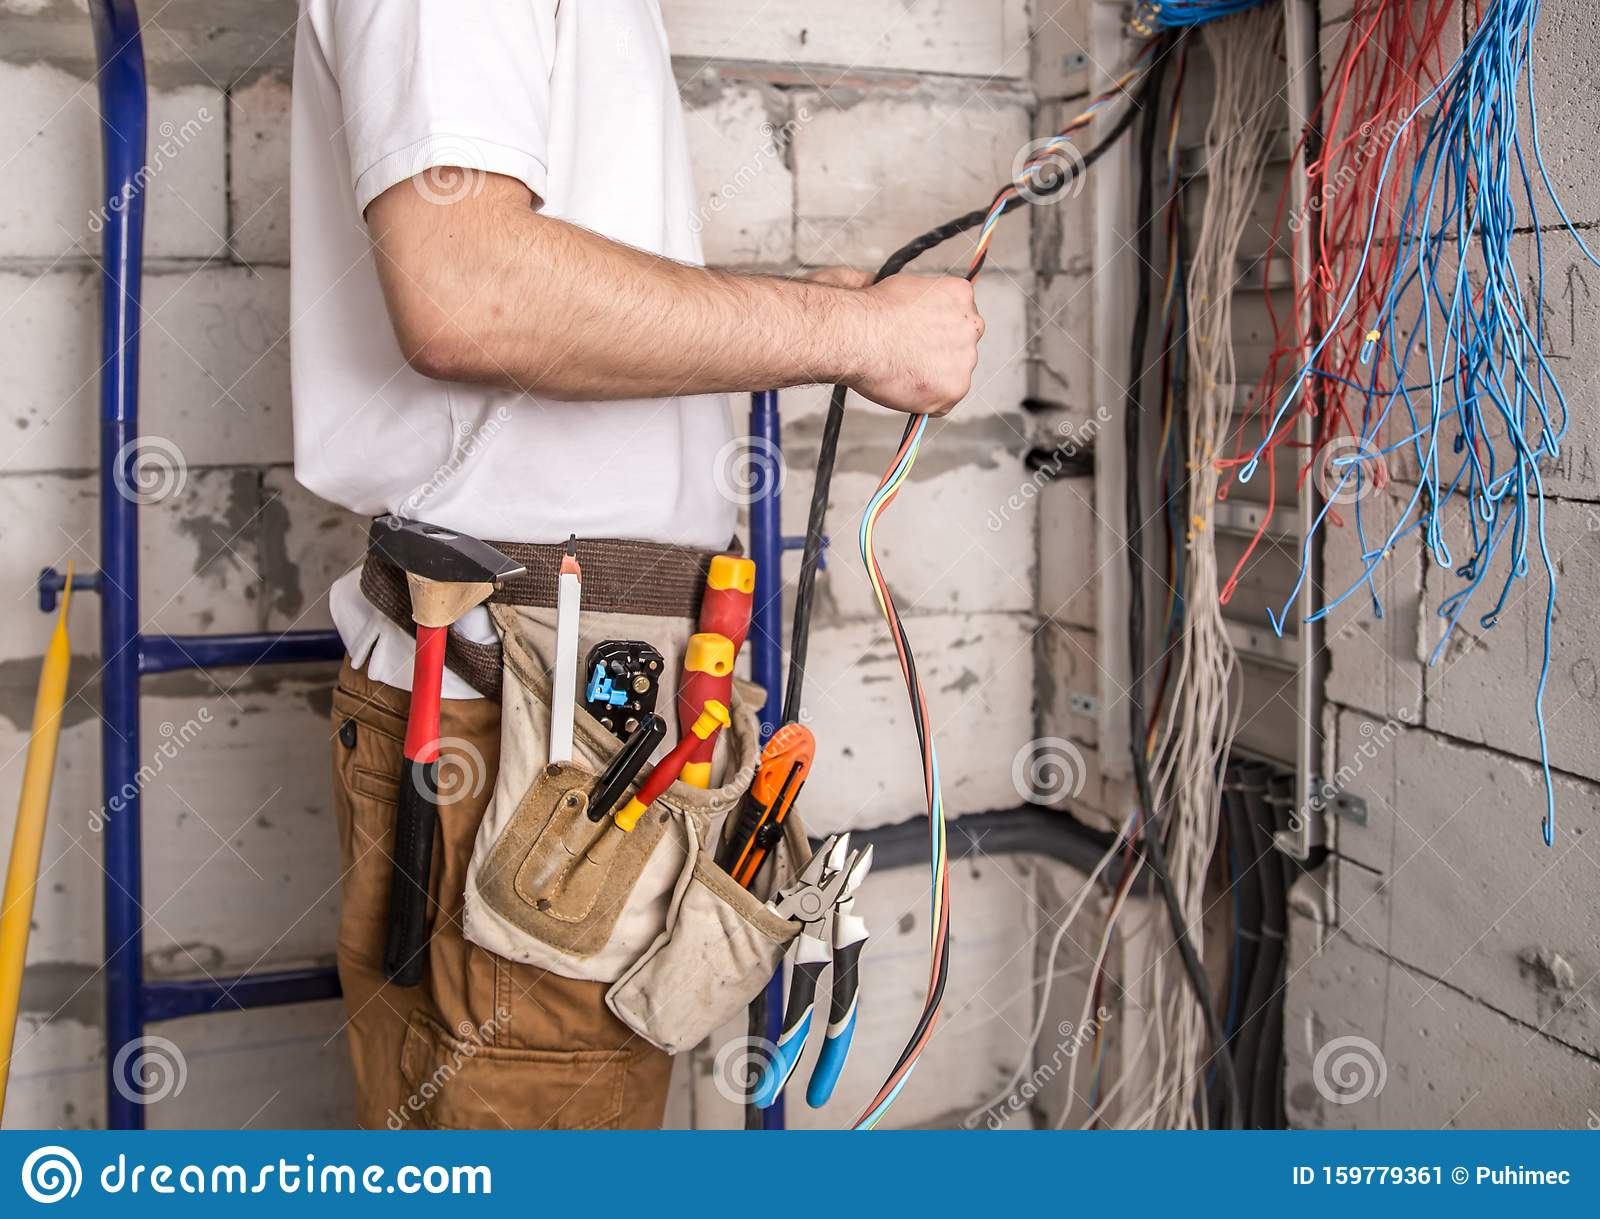 Electrician Working Near The Board With Wires Installation And Connection Of Electrics Stock Image Image Of Phase Bunch 159779361